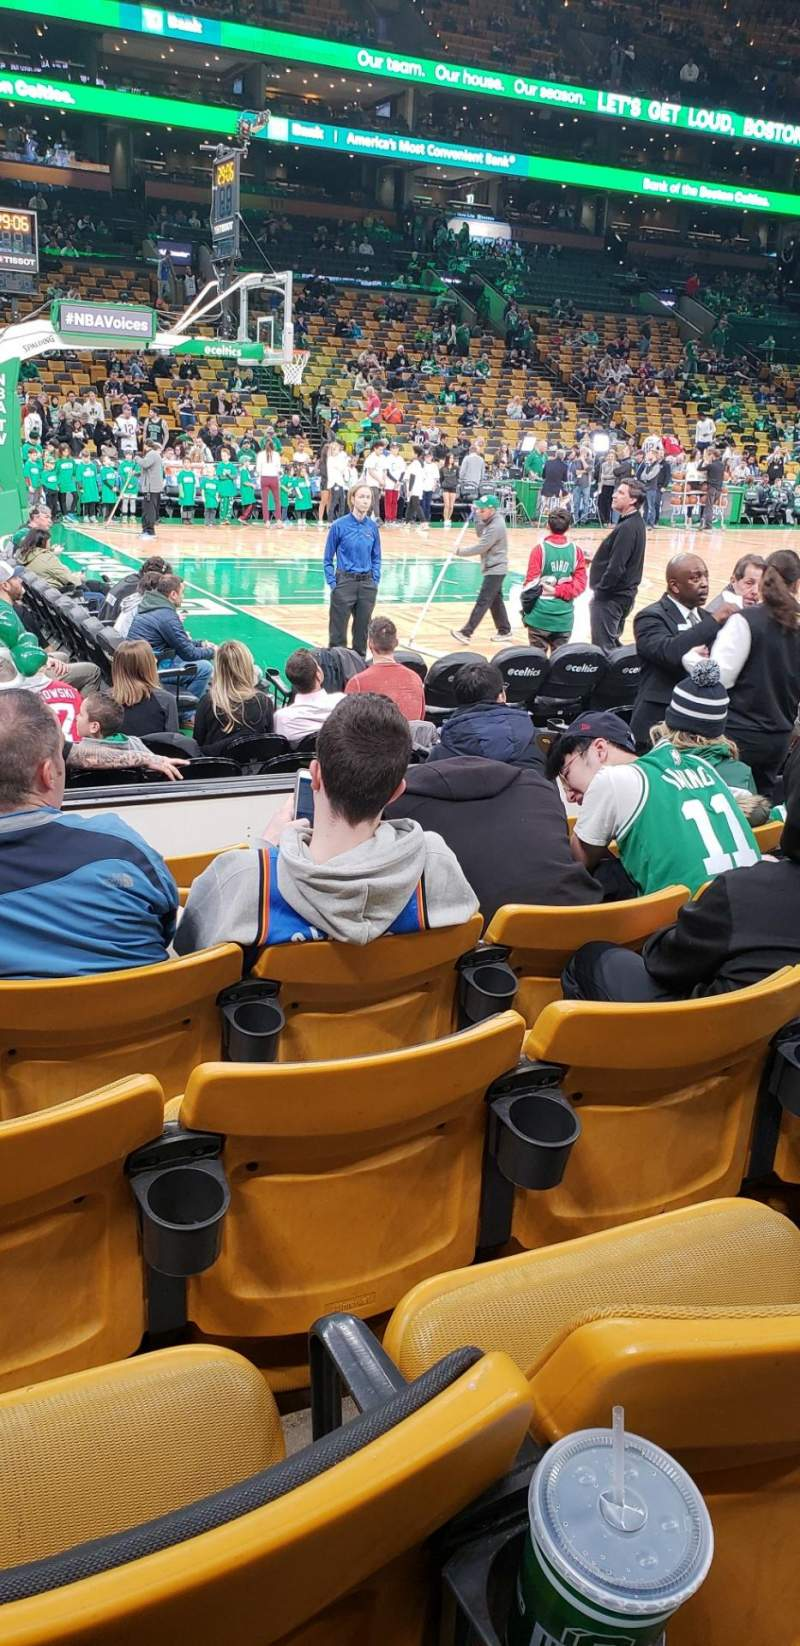 Seating view for Td garden Section Loge 14 Row 6 Seat 7